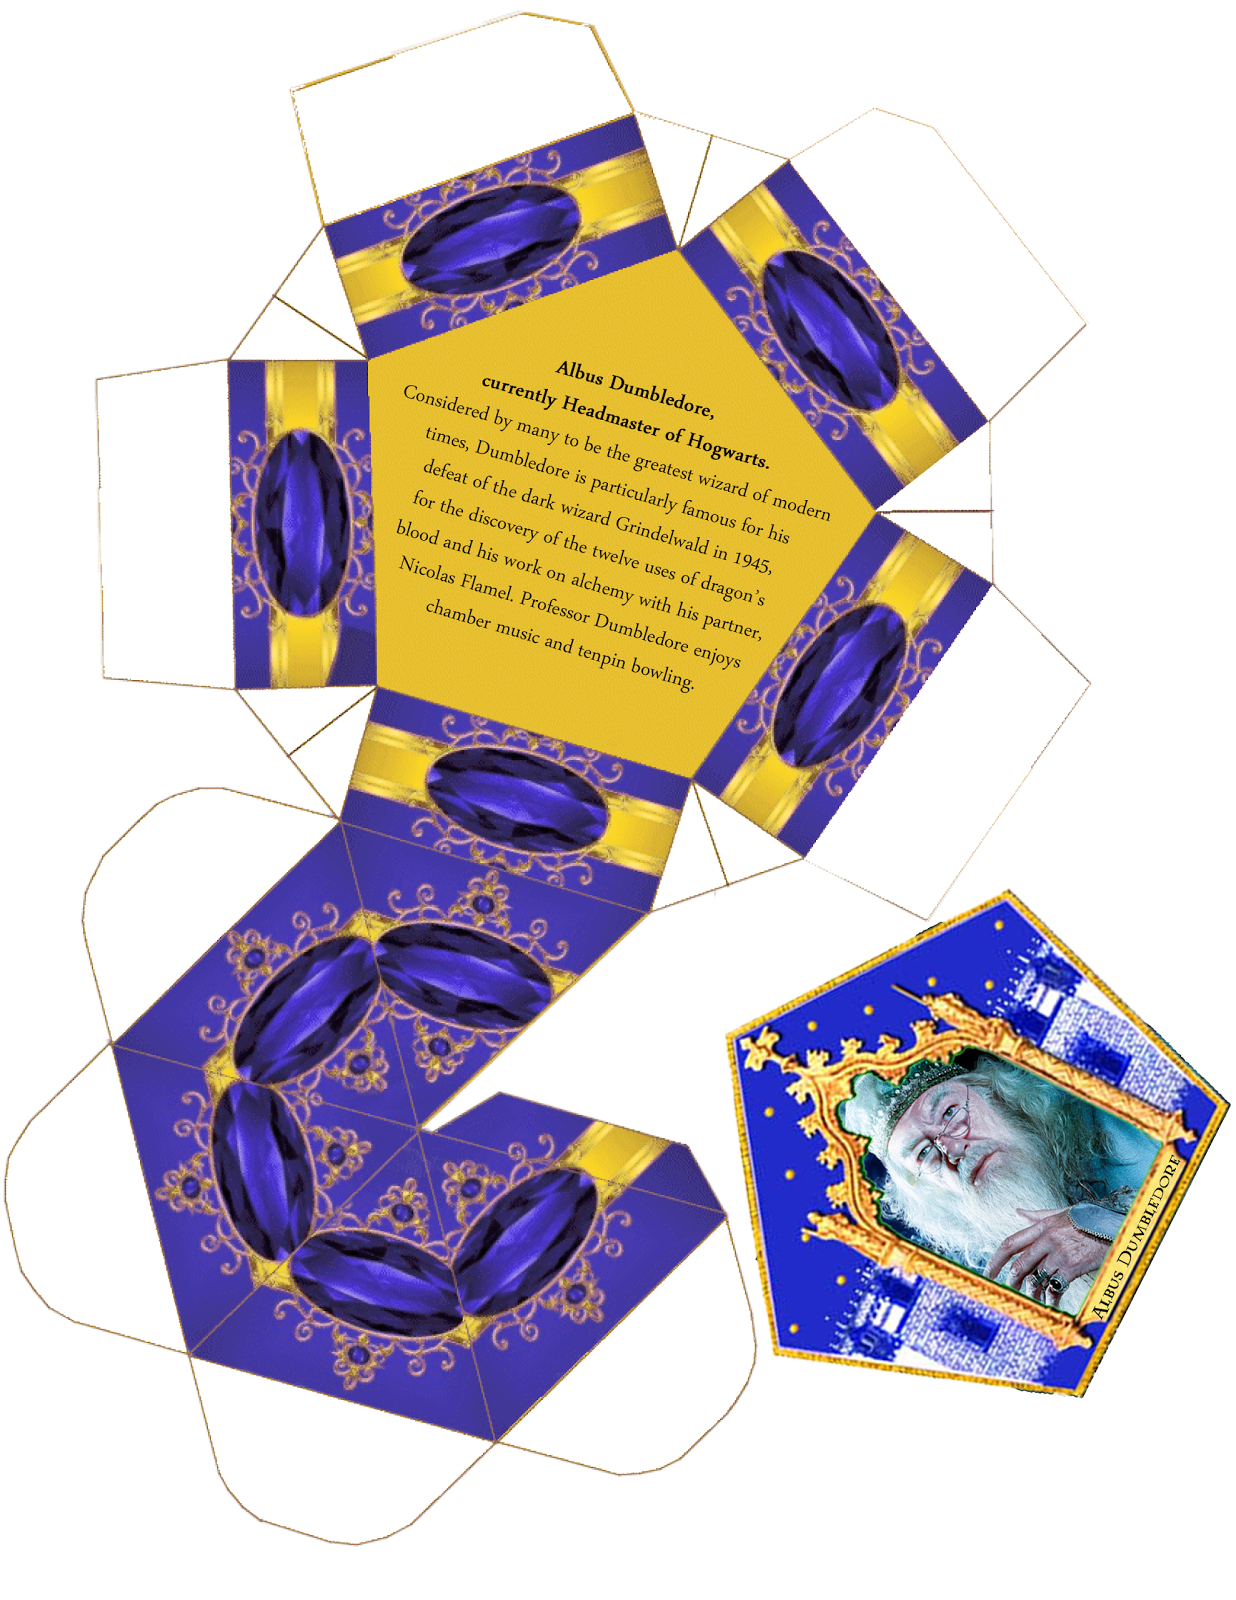 This Is The Albus Dumbledore Chocolate Frog Card And Template Description Taken Directly From Book